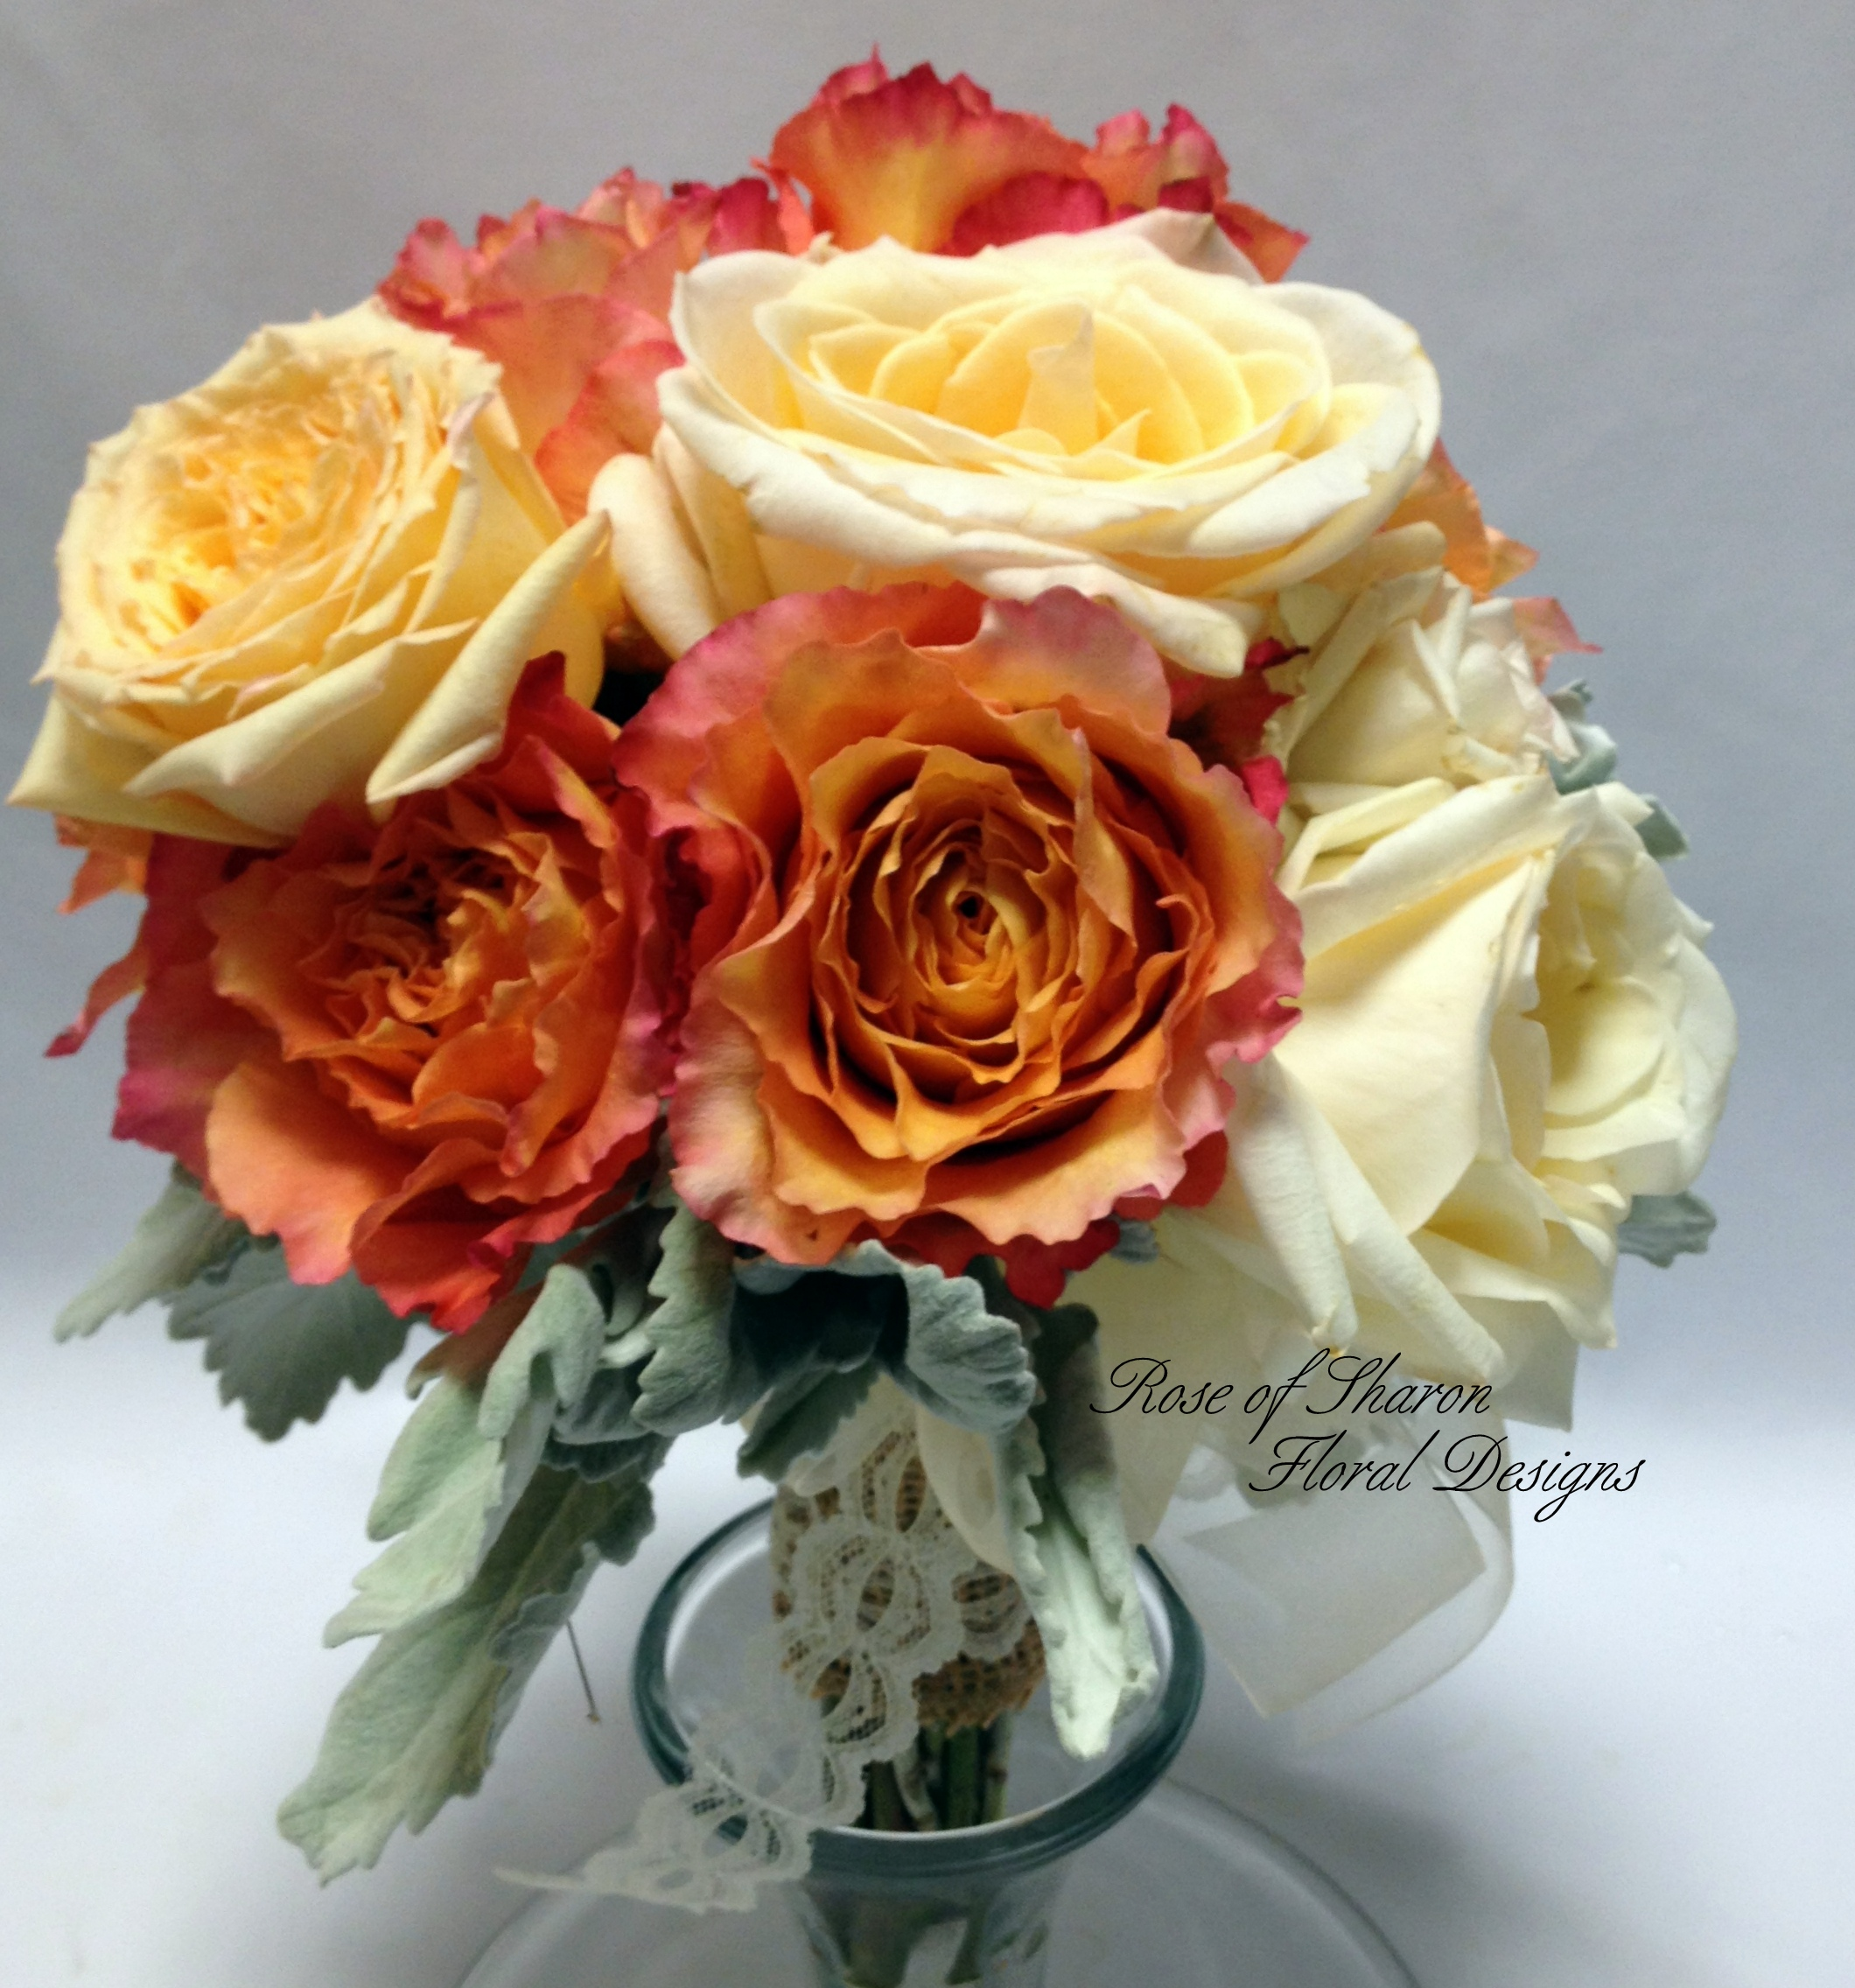 Orange and Cream Hand-Tied Rose Bouquet. Rose of Sharon Floral Designs